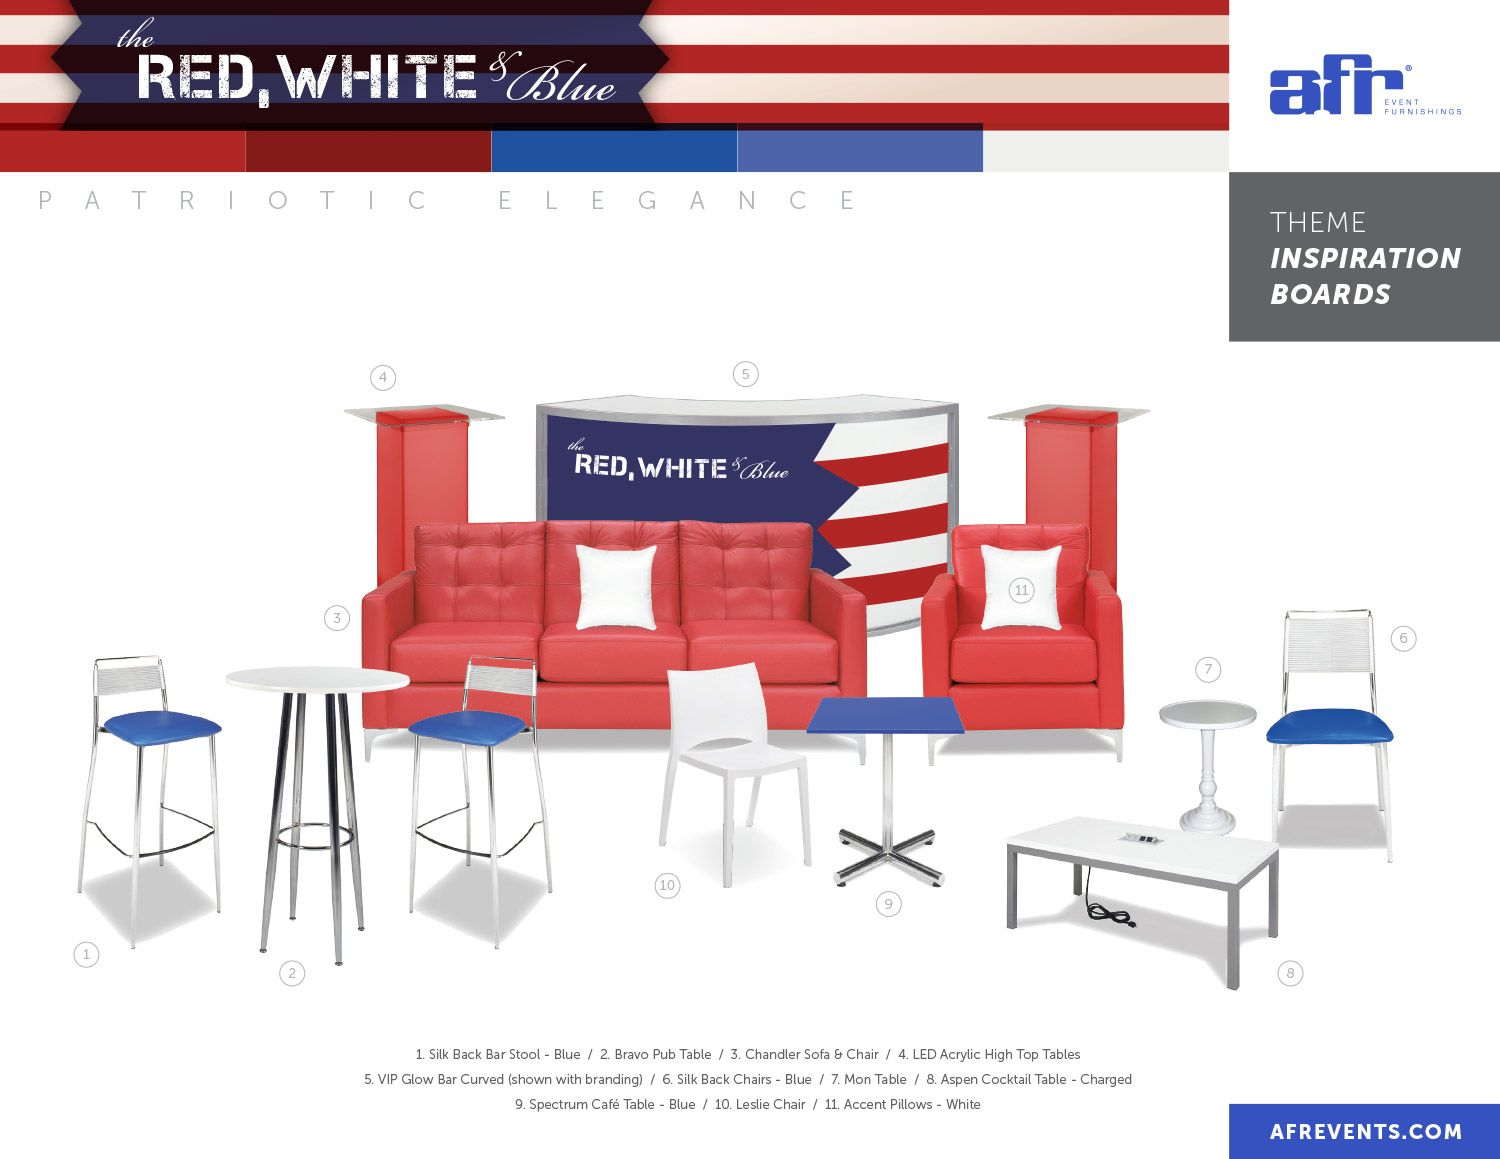 Rental furniture by Olivia Comport on cnn proposal event